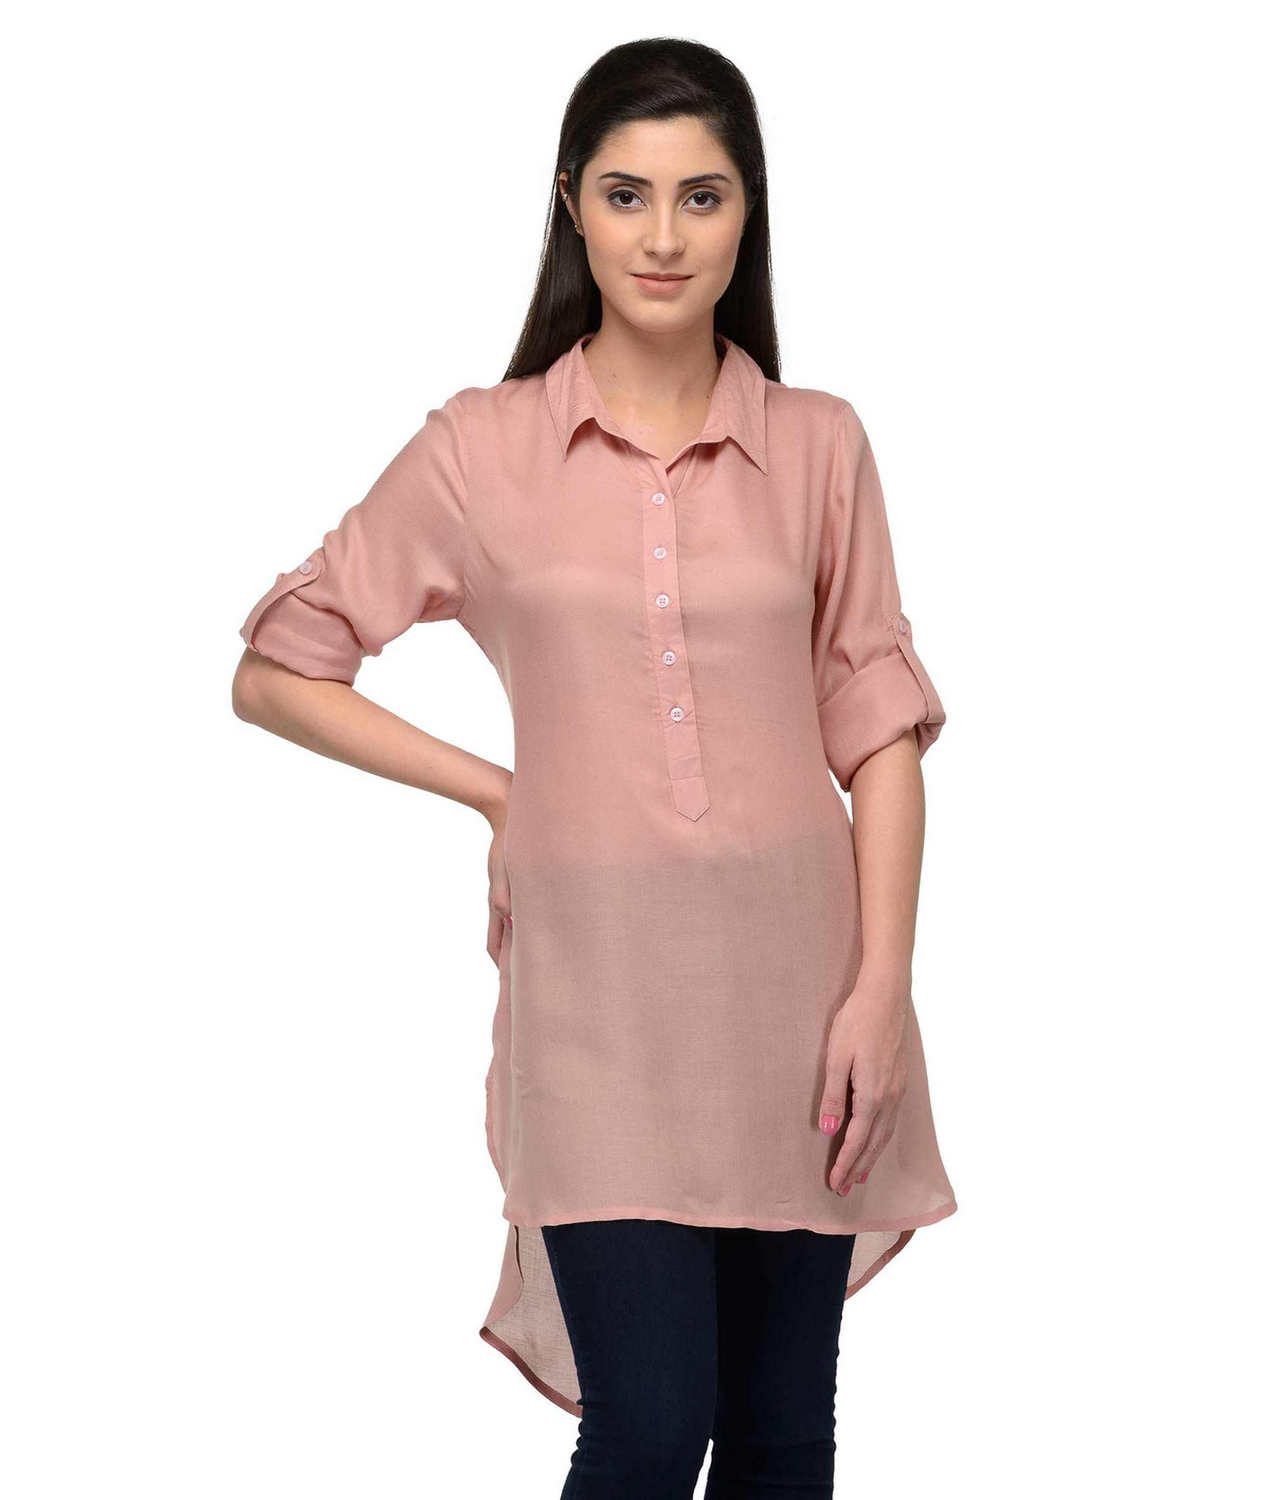 Collared High Low Tunic Top in Peach